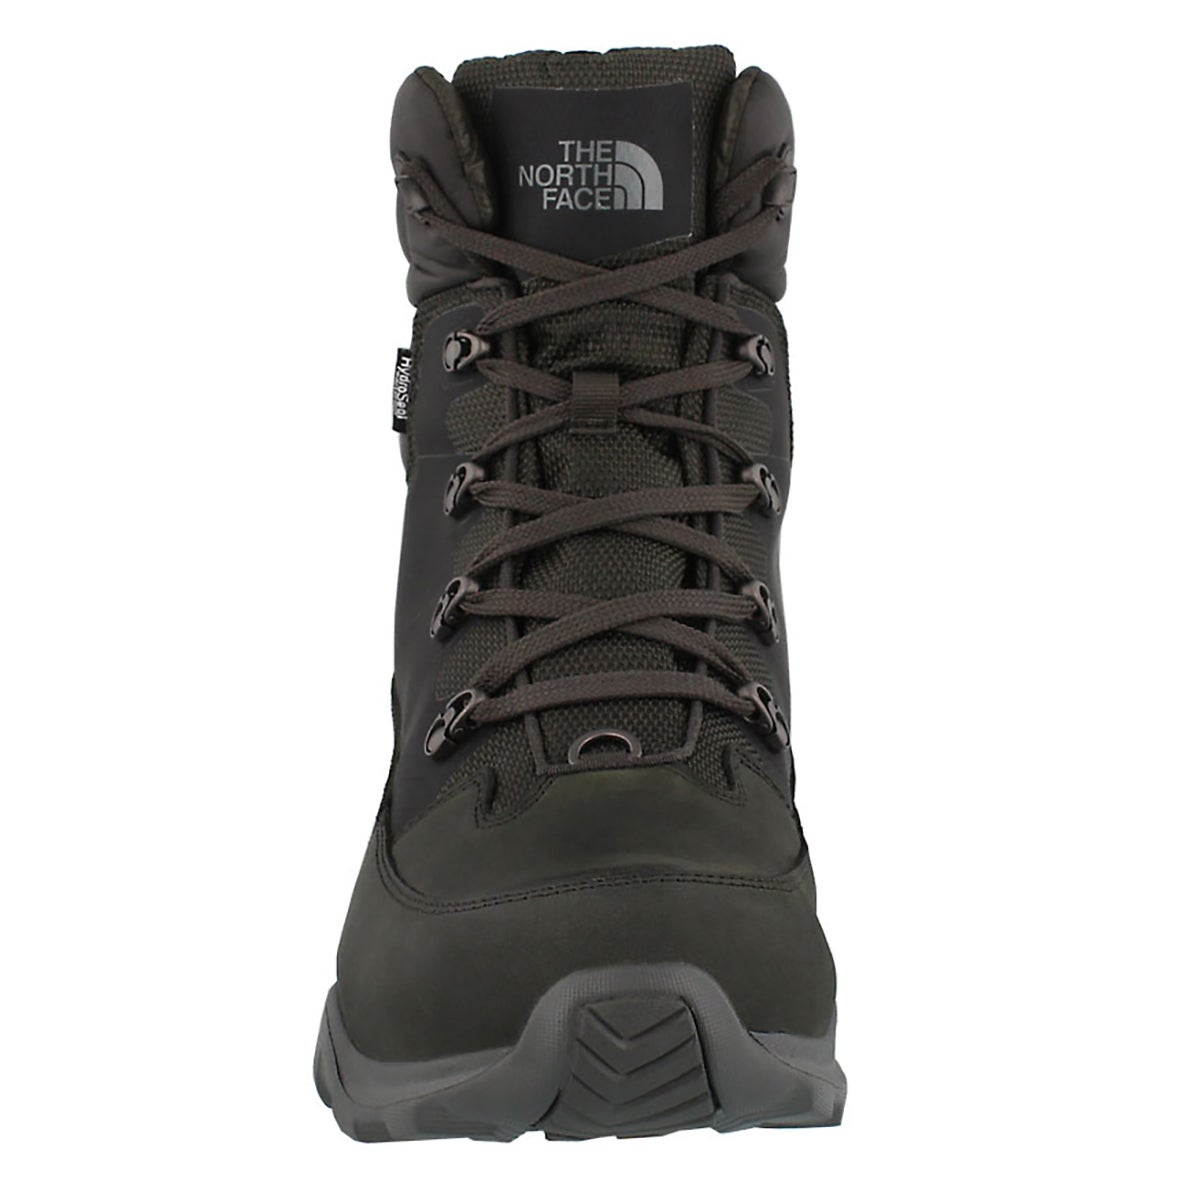 Mns ThermoBall Lifty grey wntr boot